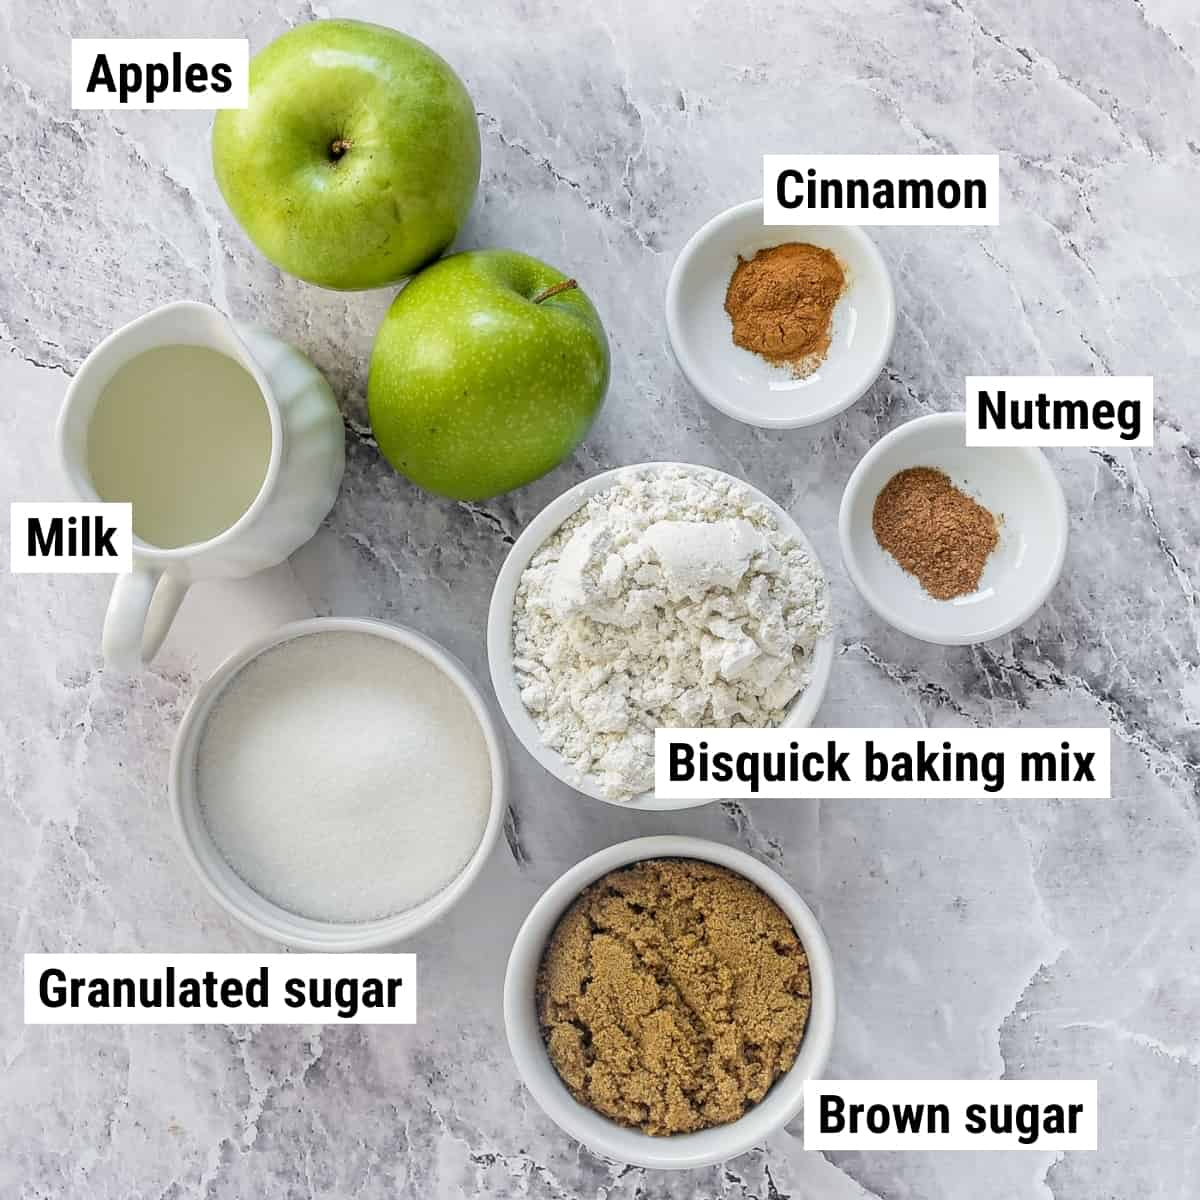 The ingredients for bisquick apple cobbler spread out on a table.